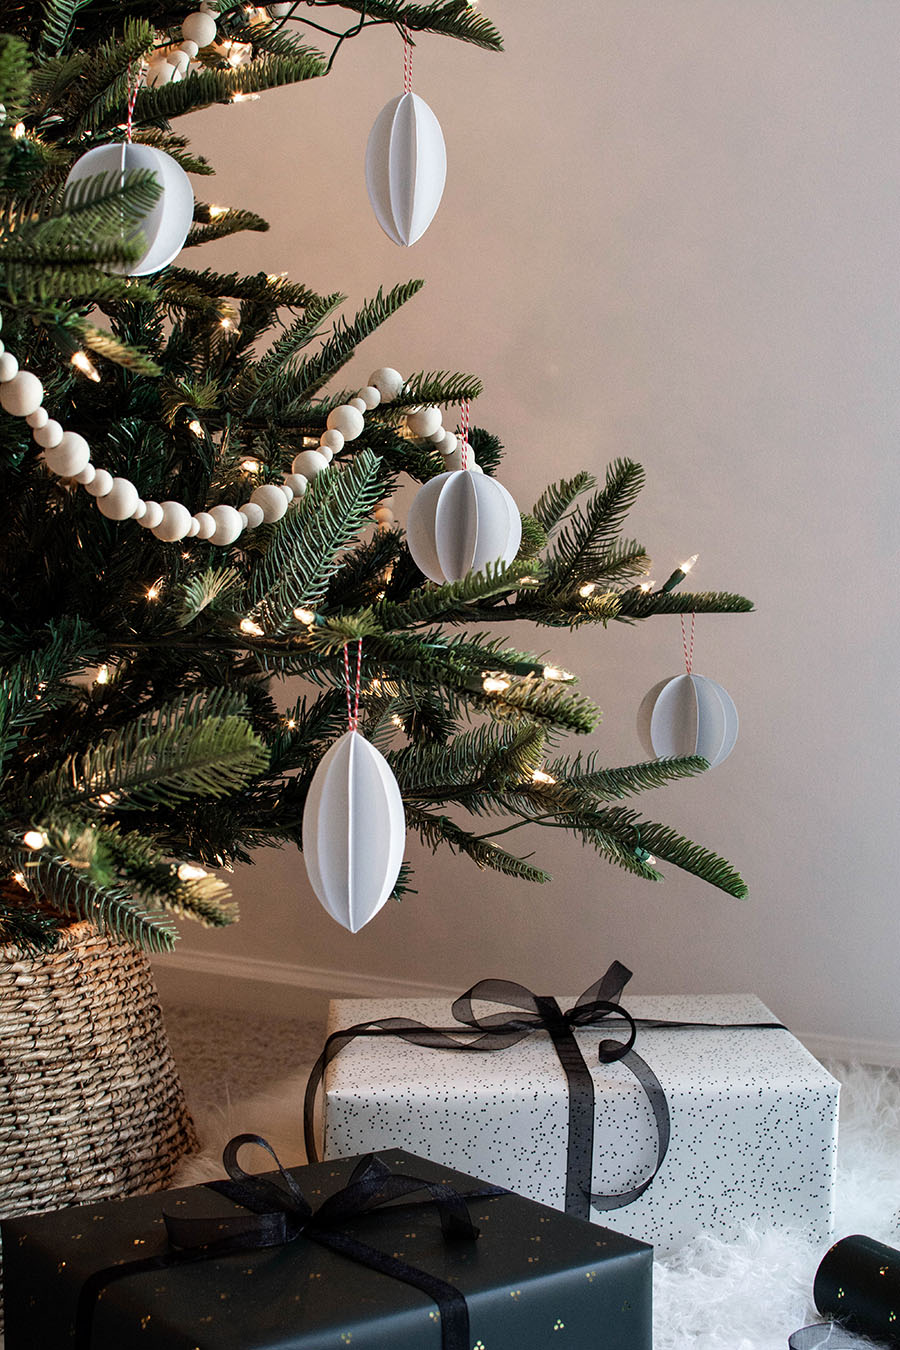 Diy Paper Ornaments With The Canon